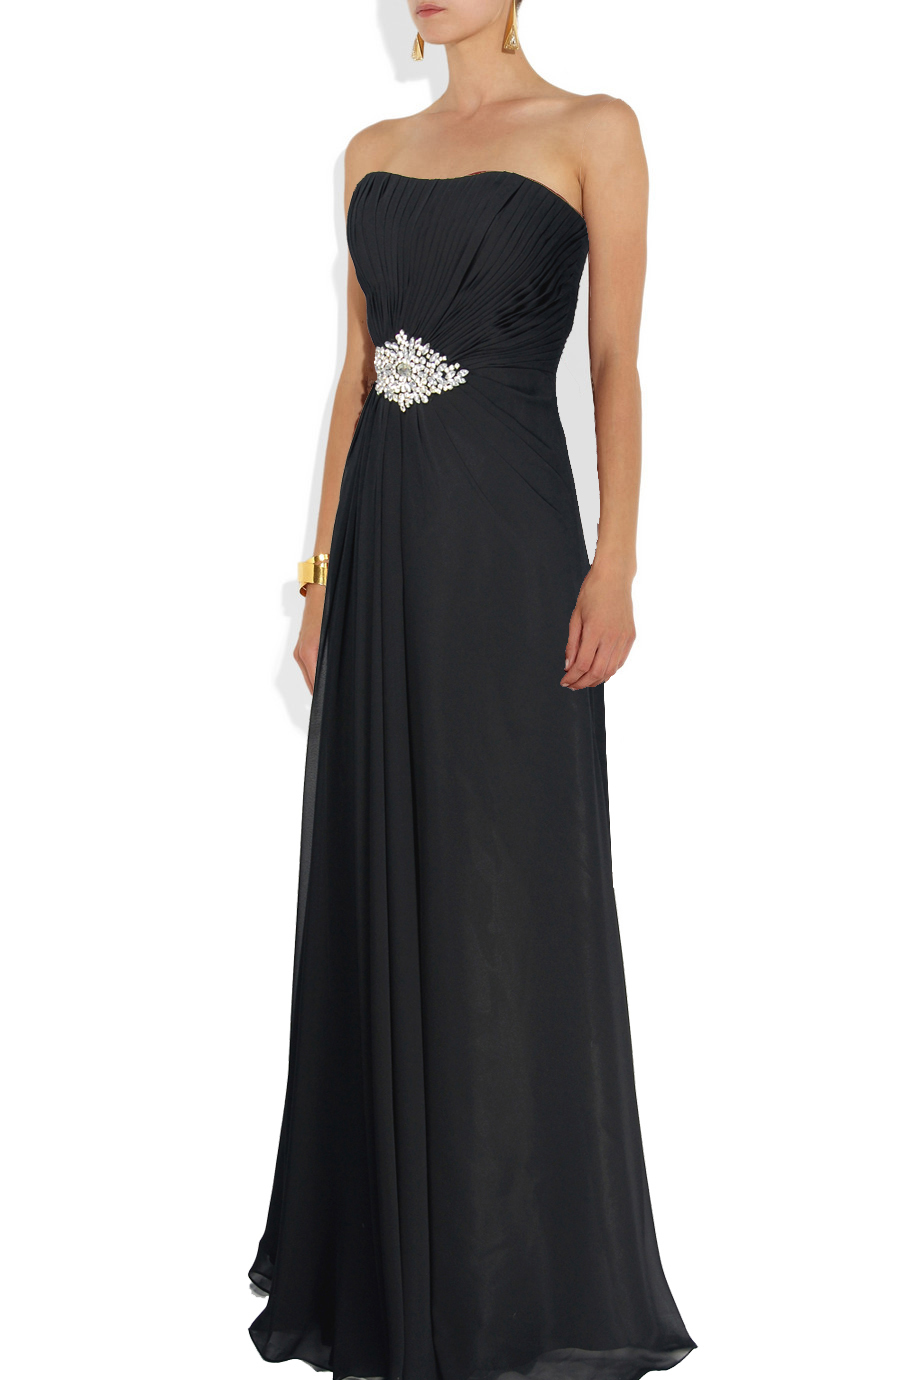 Elegant Formal Dresses Uk : Things To Know